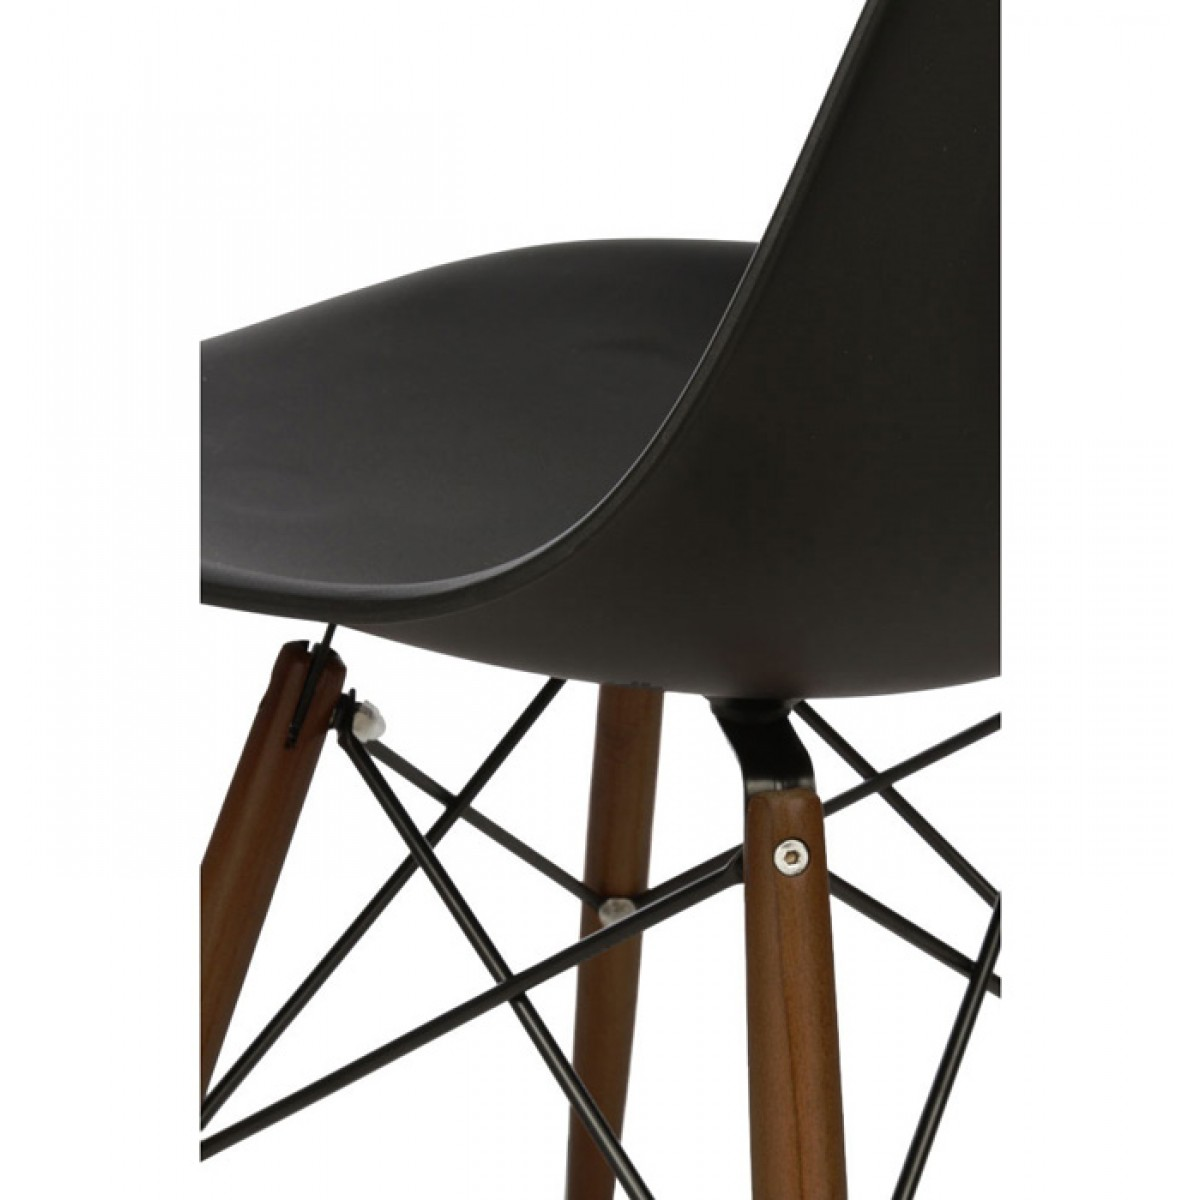 black plastic chair with wooden legs revolving in surat set of 4 eames style dsw molded dining shell